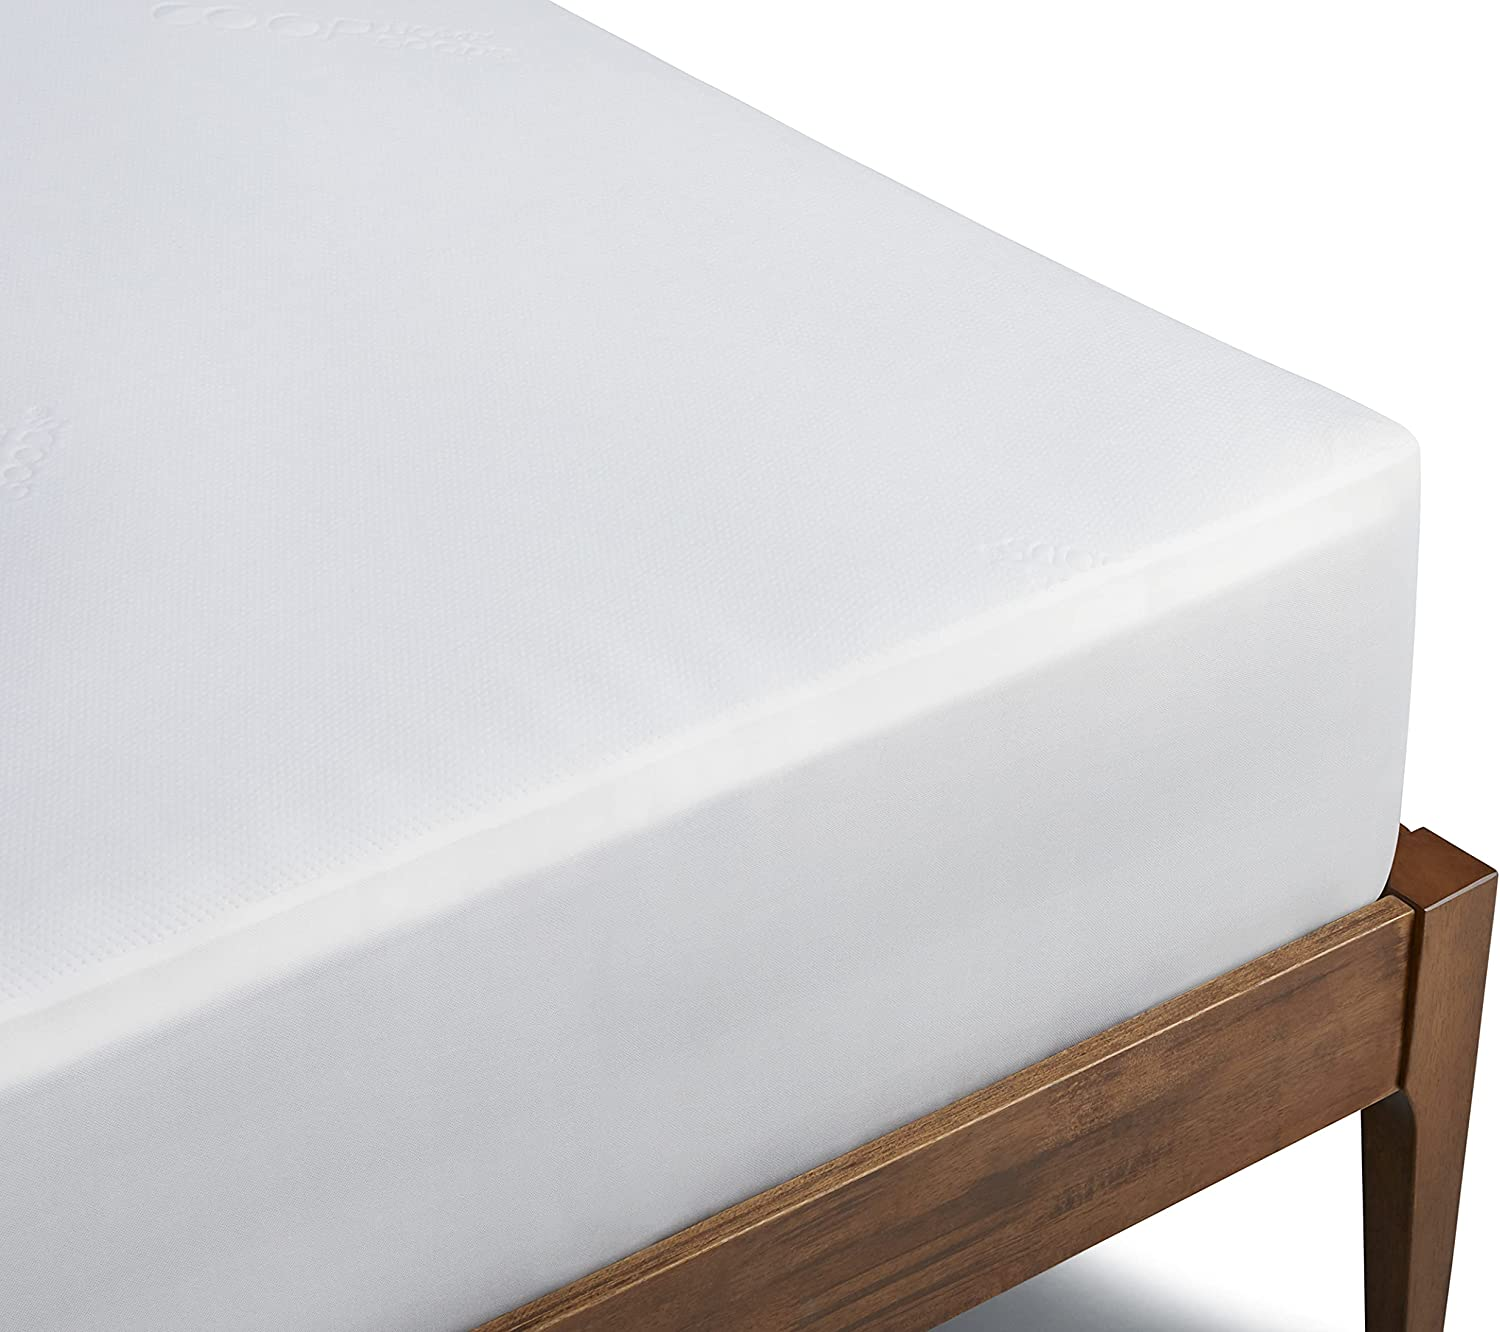 Coop Home Goods Mattress Protector -100% Waterproof, Ultra Soft Breathable Bed Mattress Cover - Silent Mattress Pad Protection - Oeko-TEX Certified